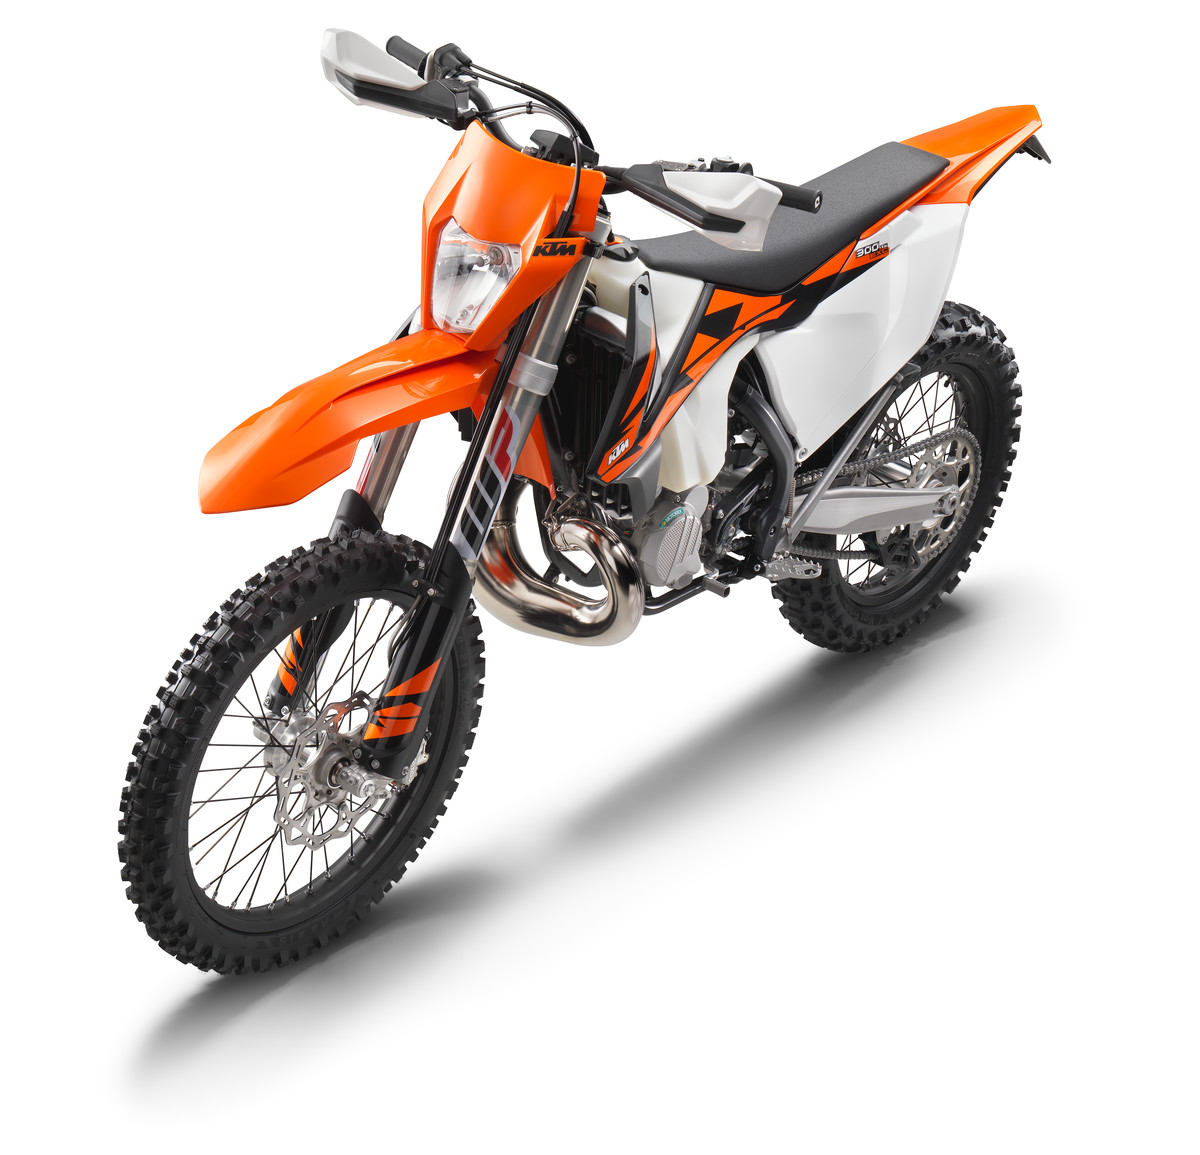 Schema Impianto Elettrico Ktm 125 Exc : Photo gallery ktm exc range dirt action